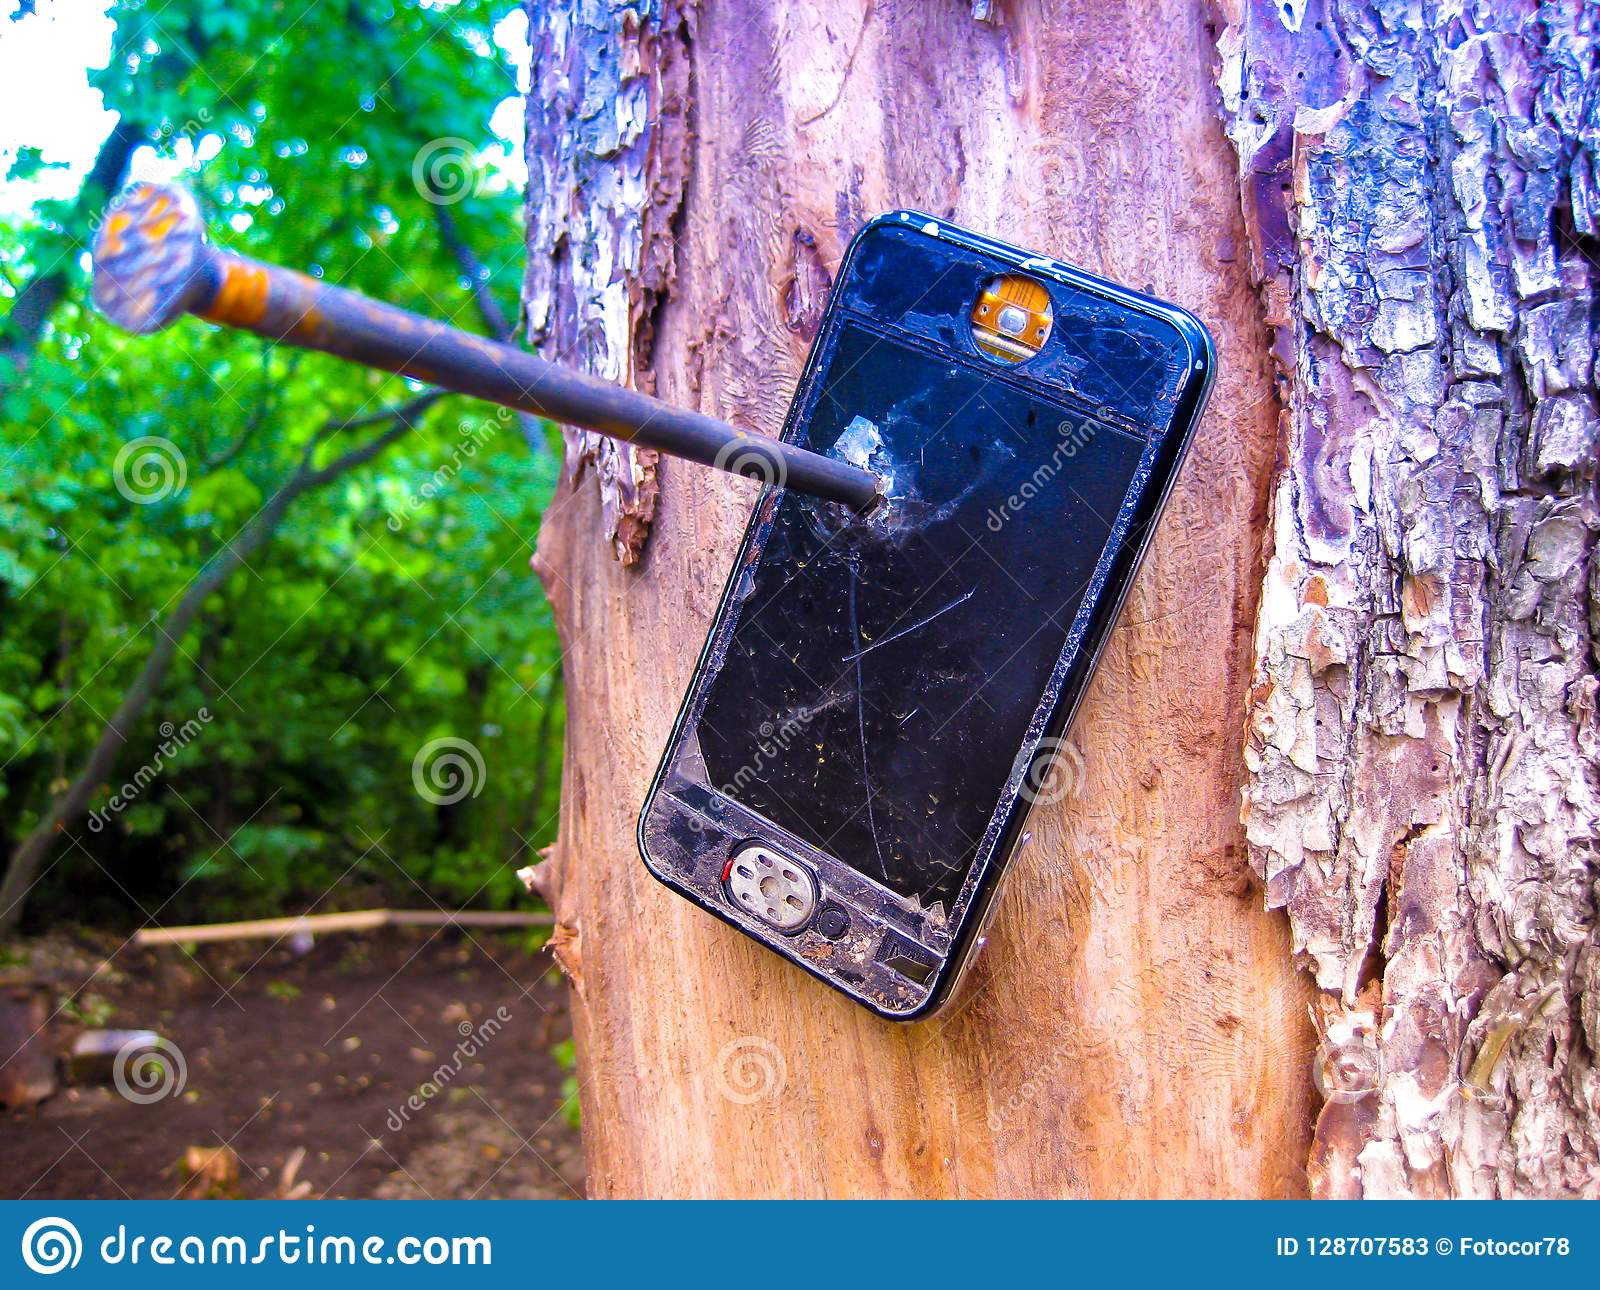 Out of coverage. Nailed to a tree broken phone.